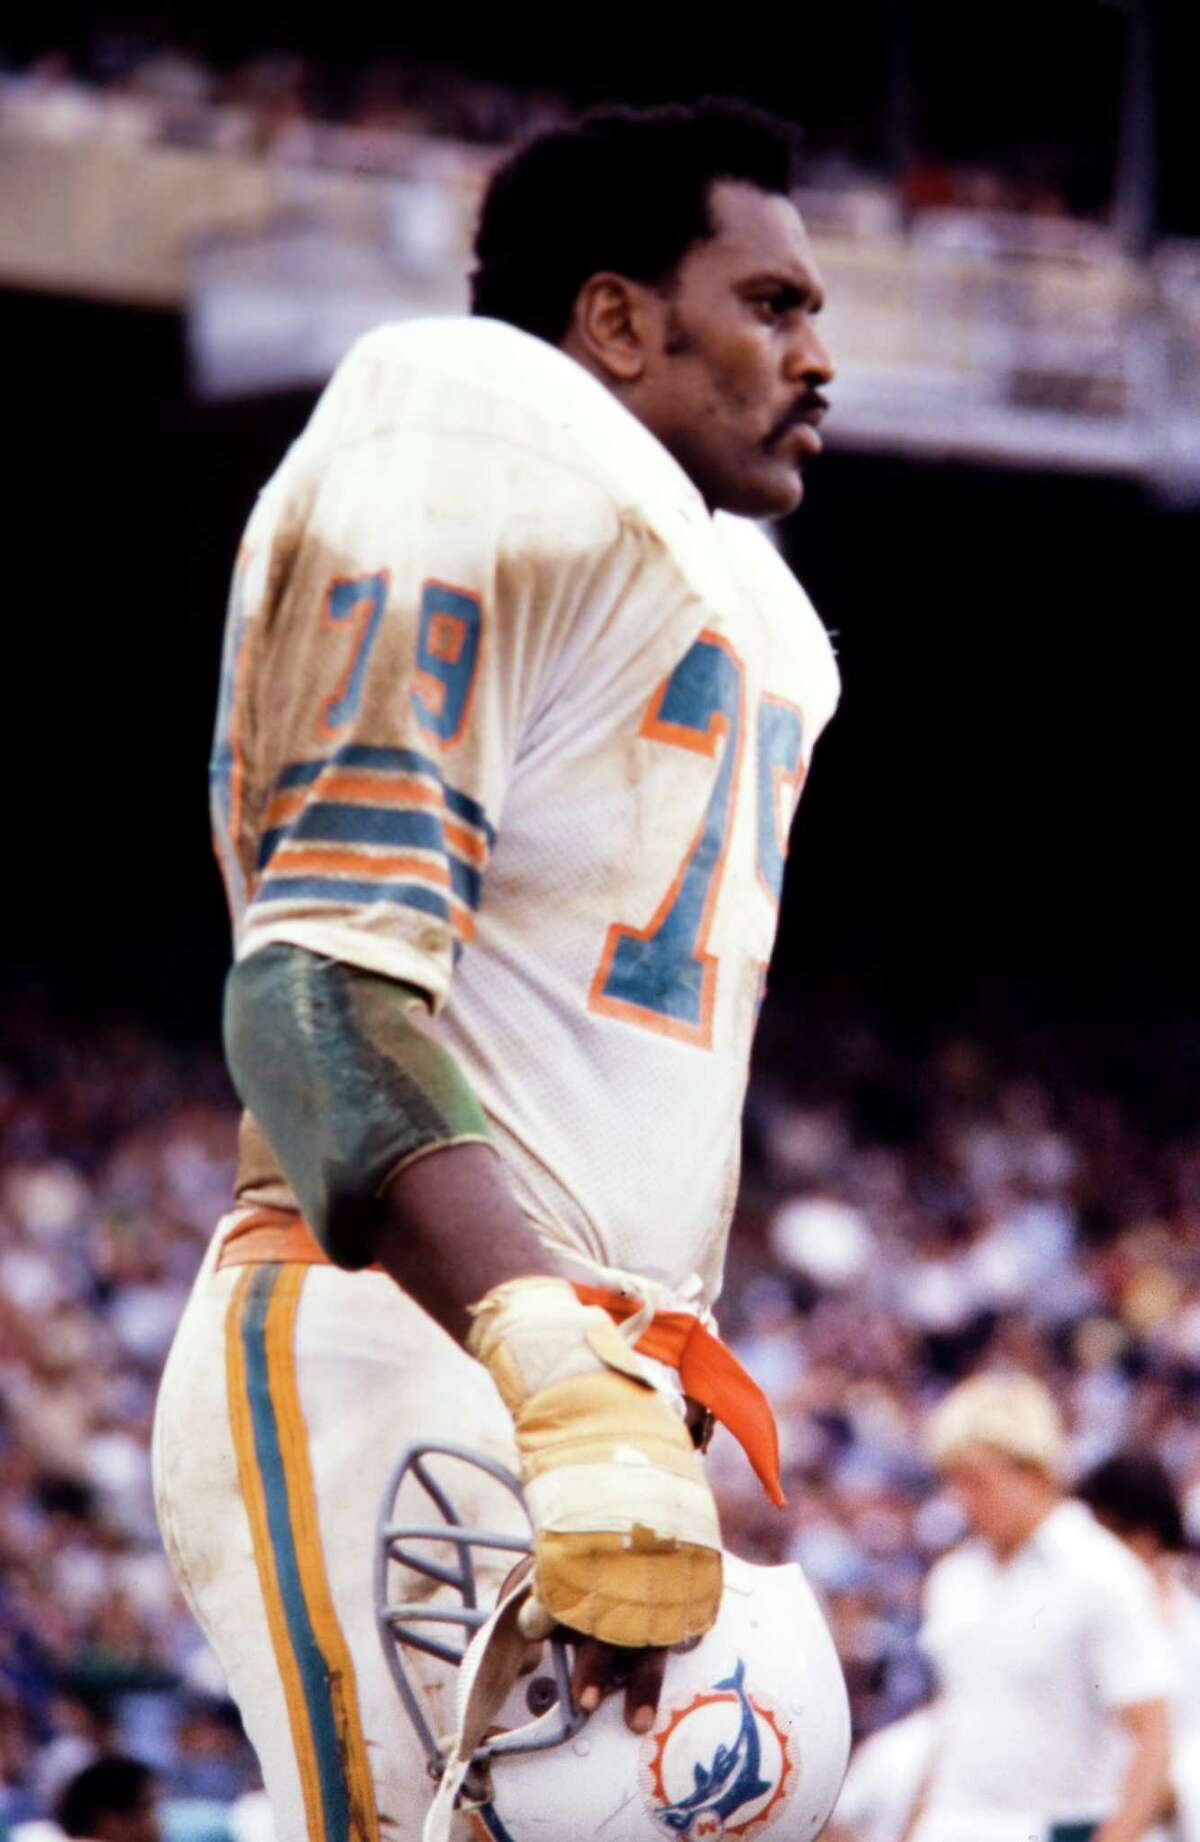 Miami Dolphins left tackle Wayne Moore (No. 79) was a star in basketball, not football at Lamar. Despite not playing a down of college football, Moore would go on to become a Pro Bowl left tackle for one of the NFL's storied franchises. -- Courtesy of the Miami Dolphins